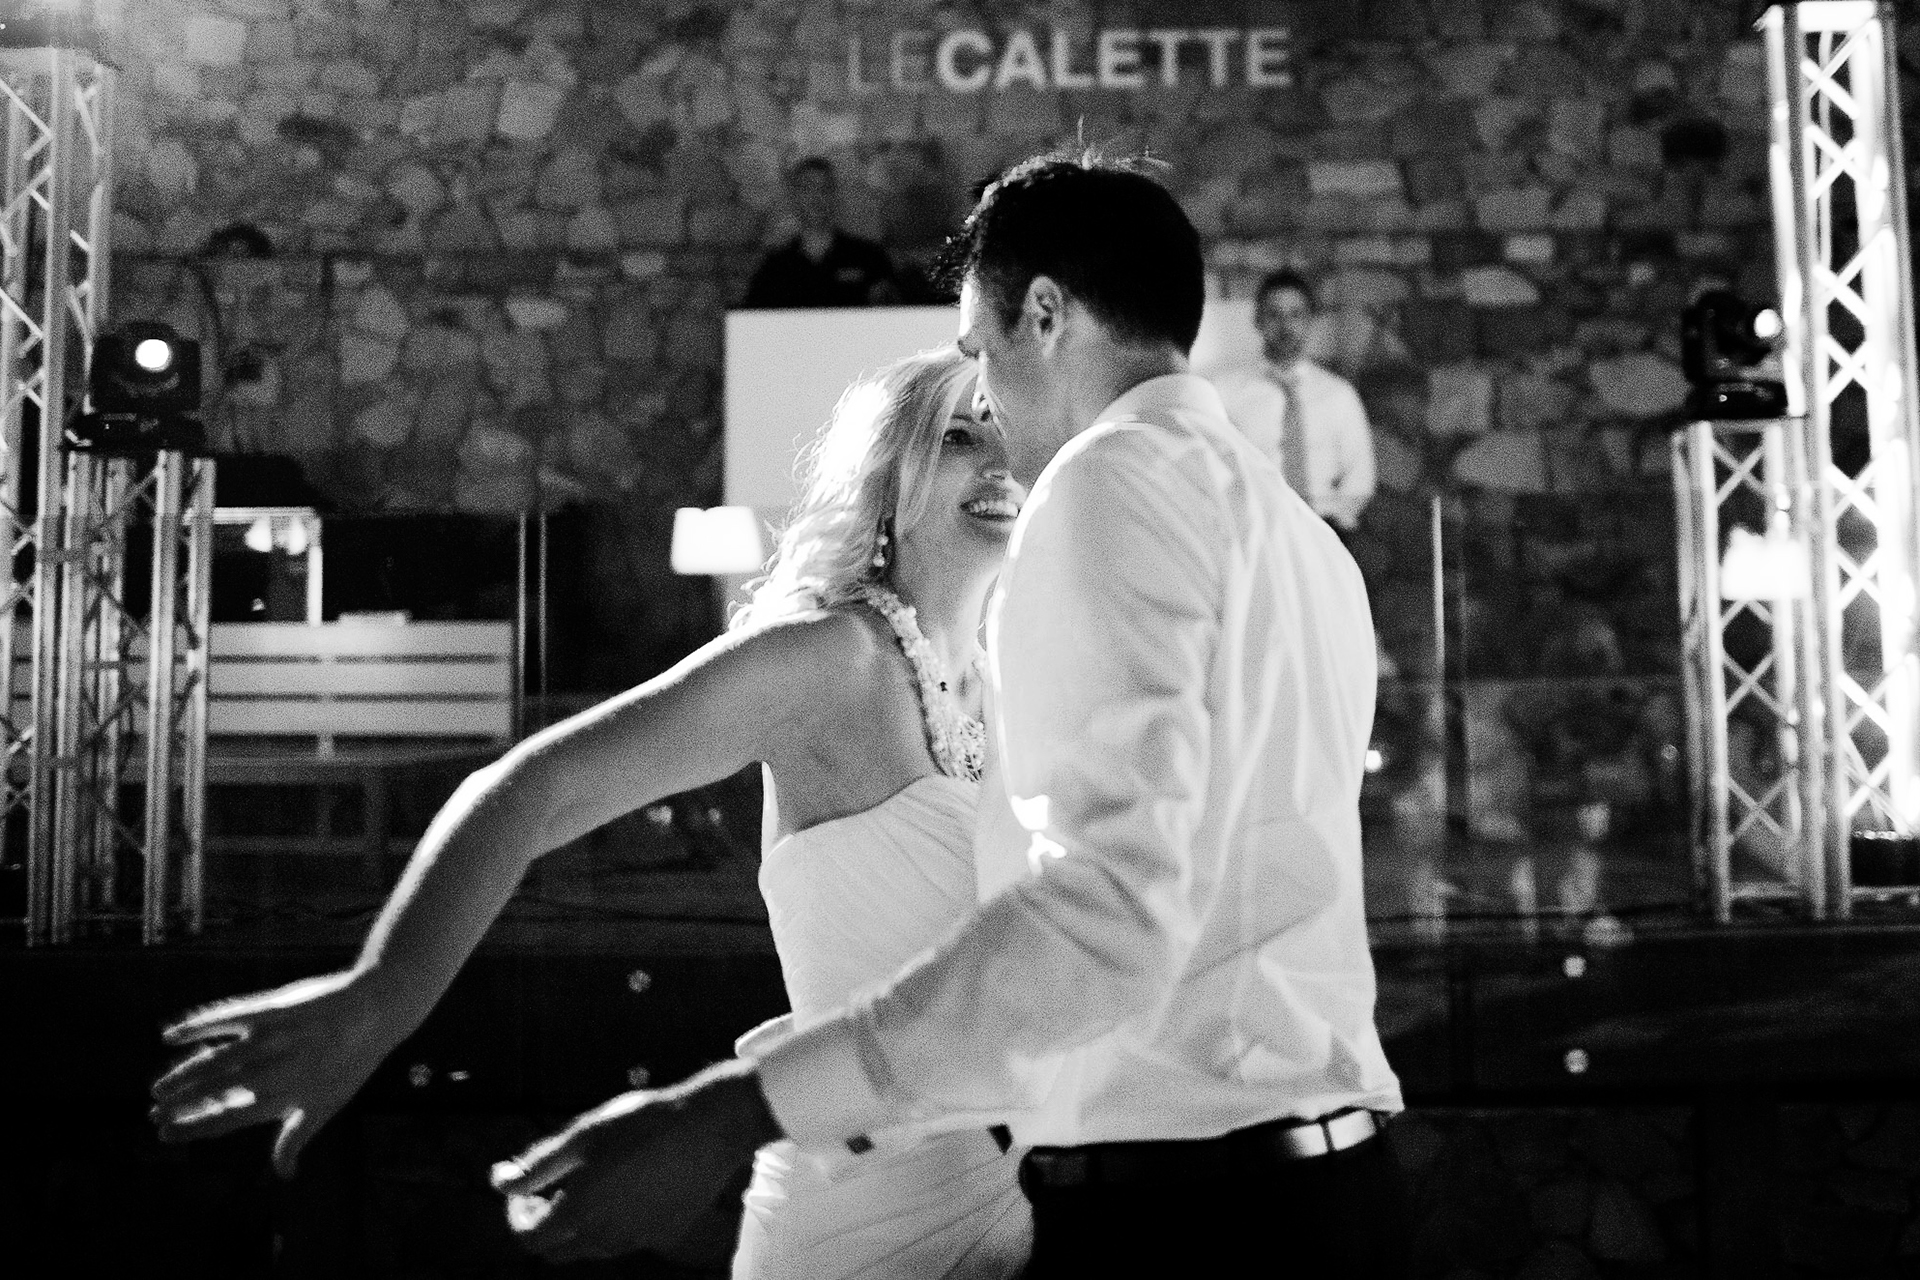 Sicily Wedding Couple First Dance Image | first dance as husband and wife